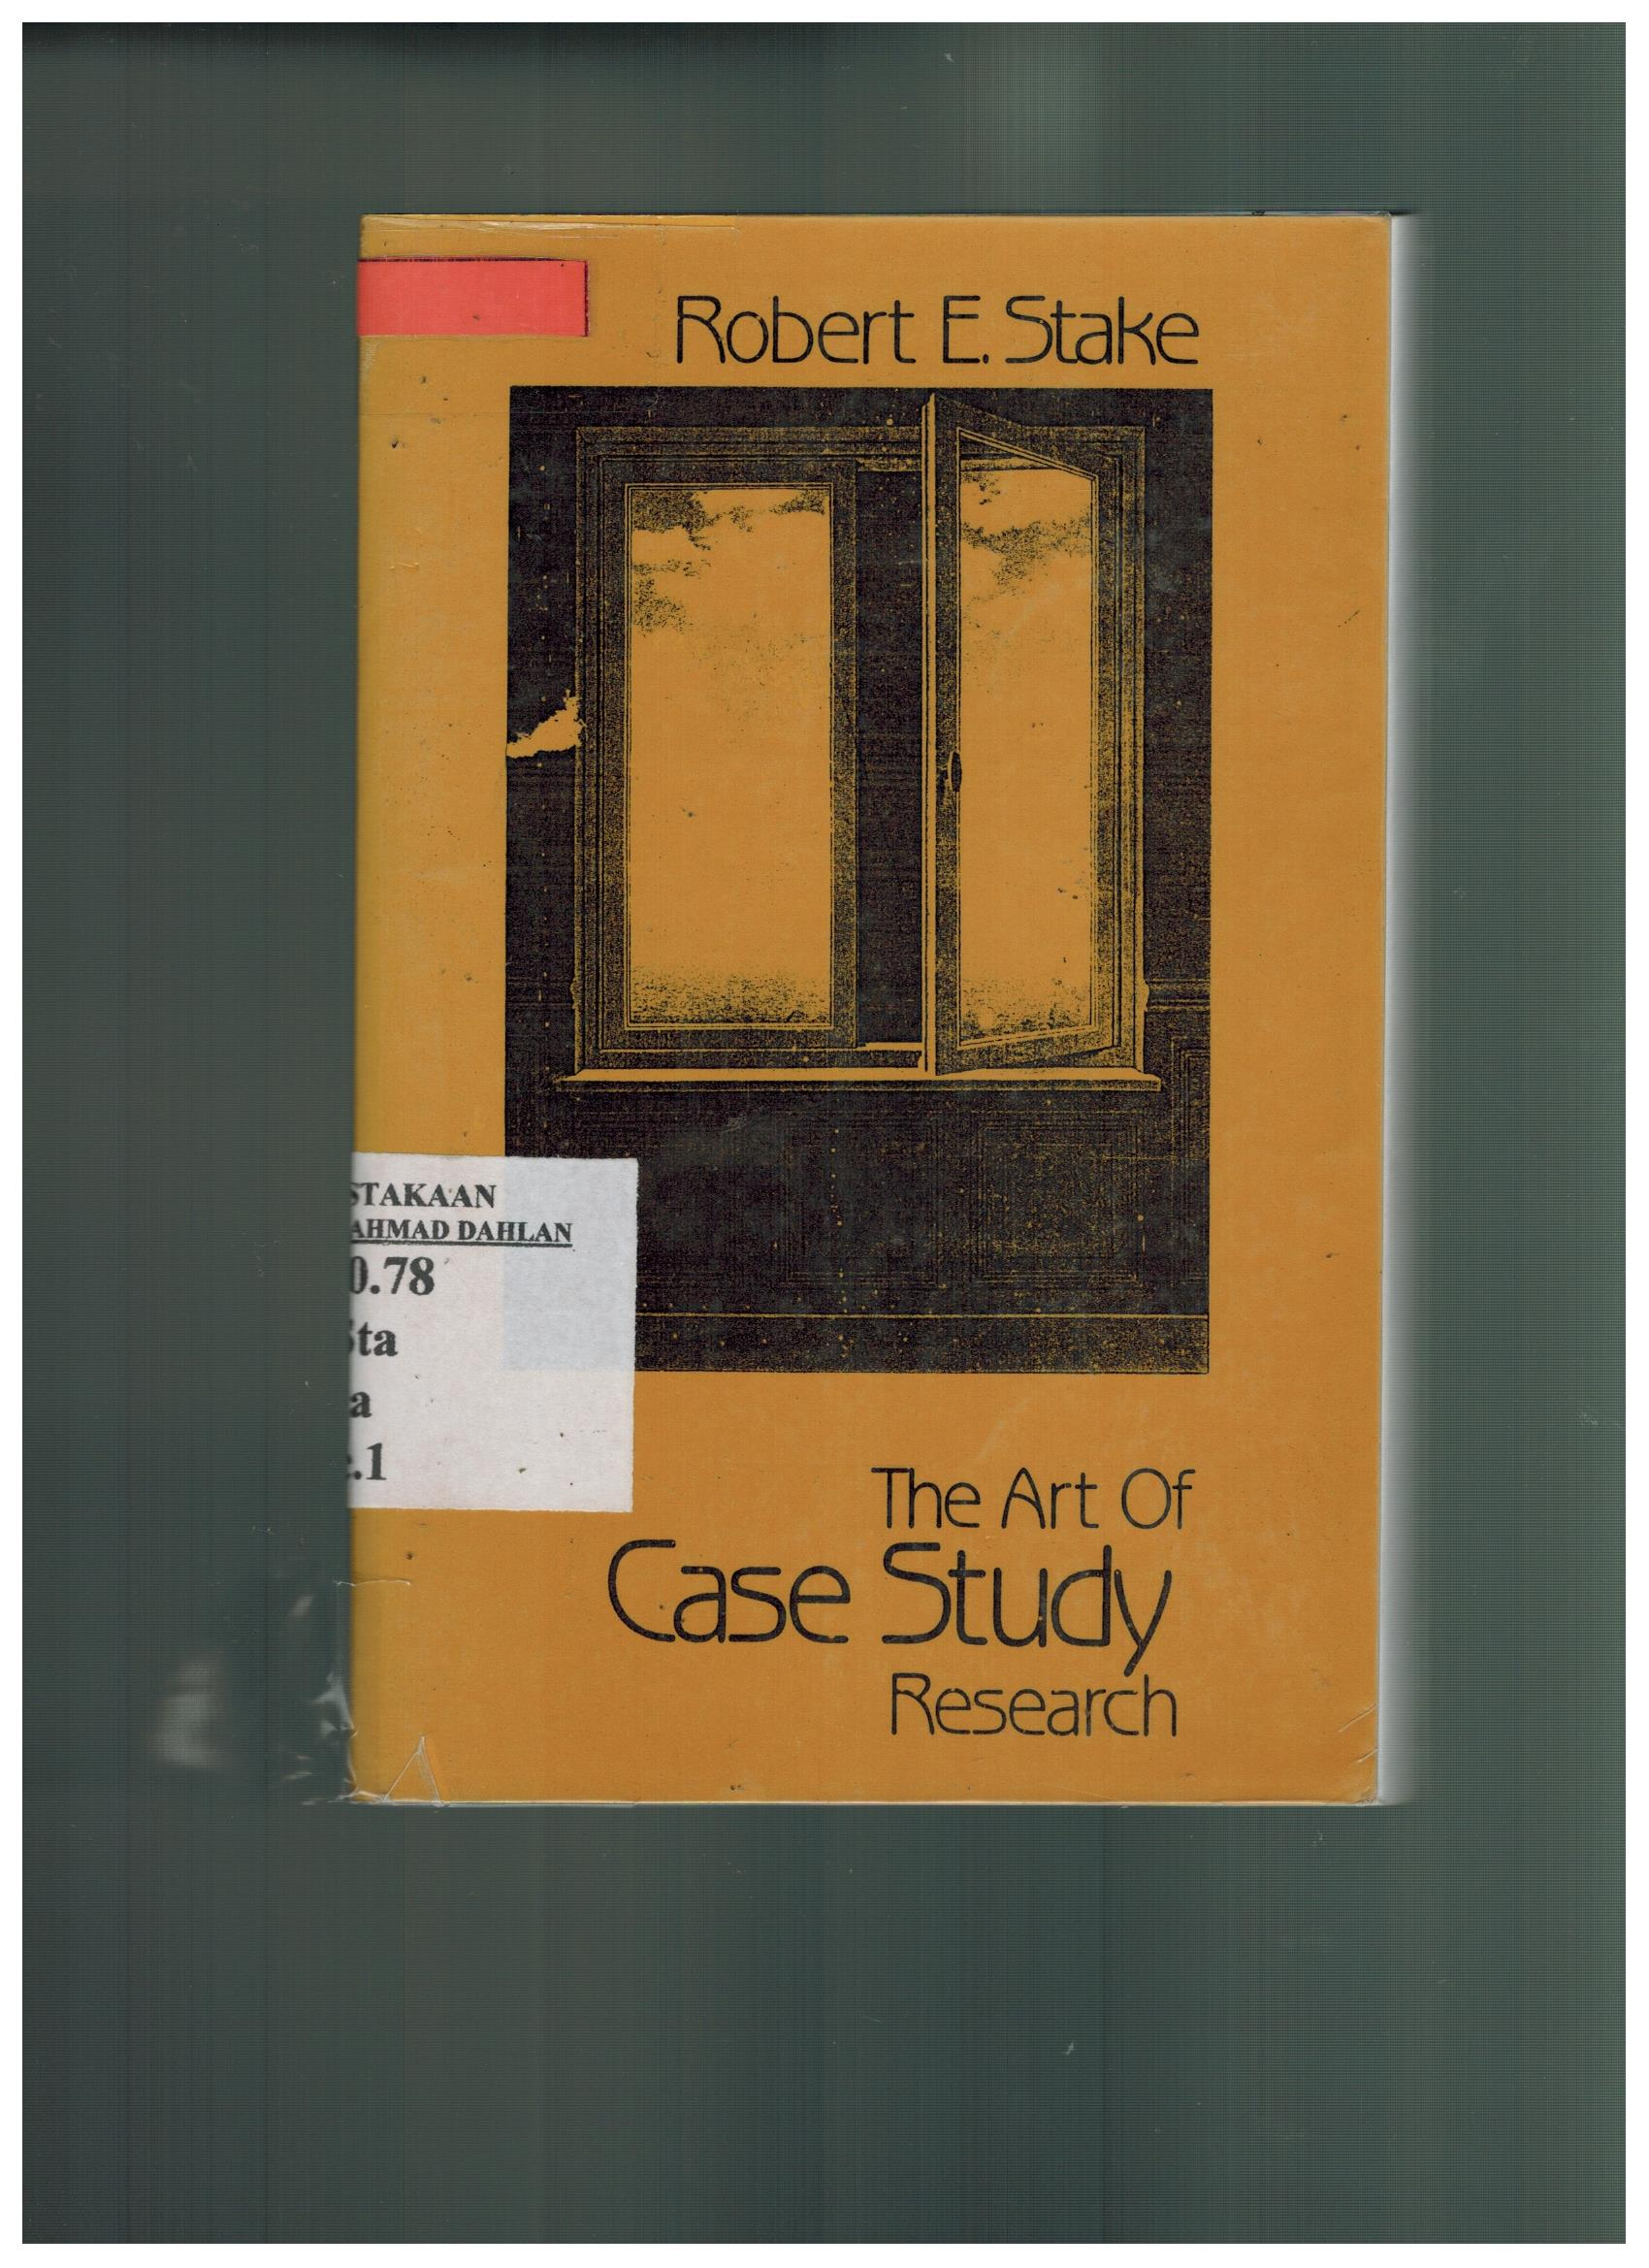 robert stake the art of case study research Robert e stake university of illinois at urbana-champaign, usa professor particularly case study methods  the art of case study research browse books.